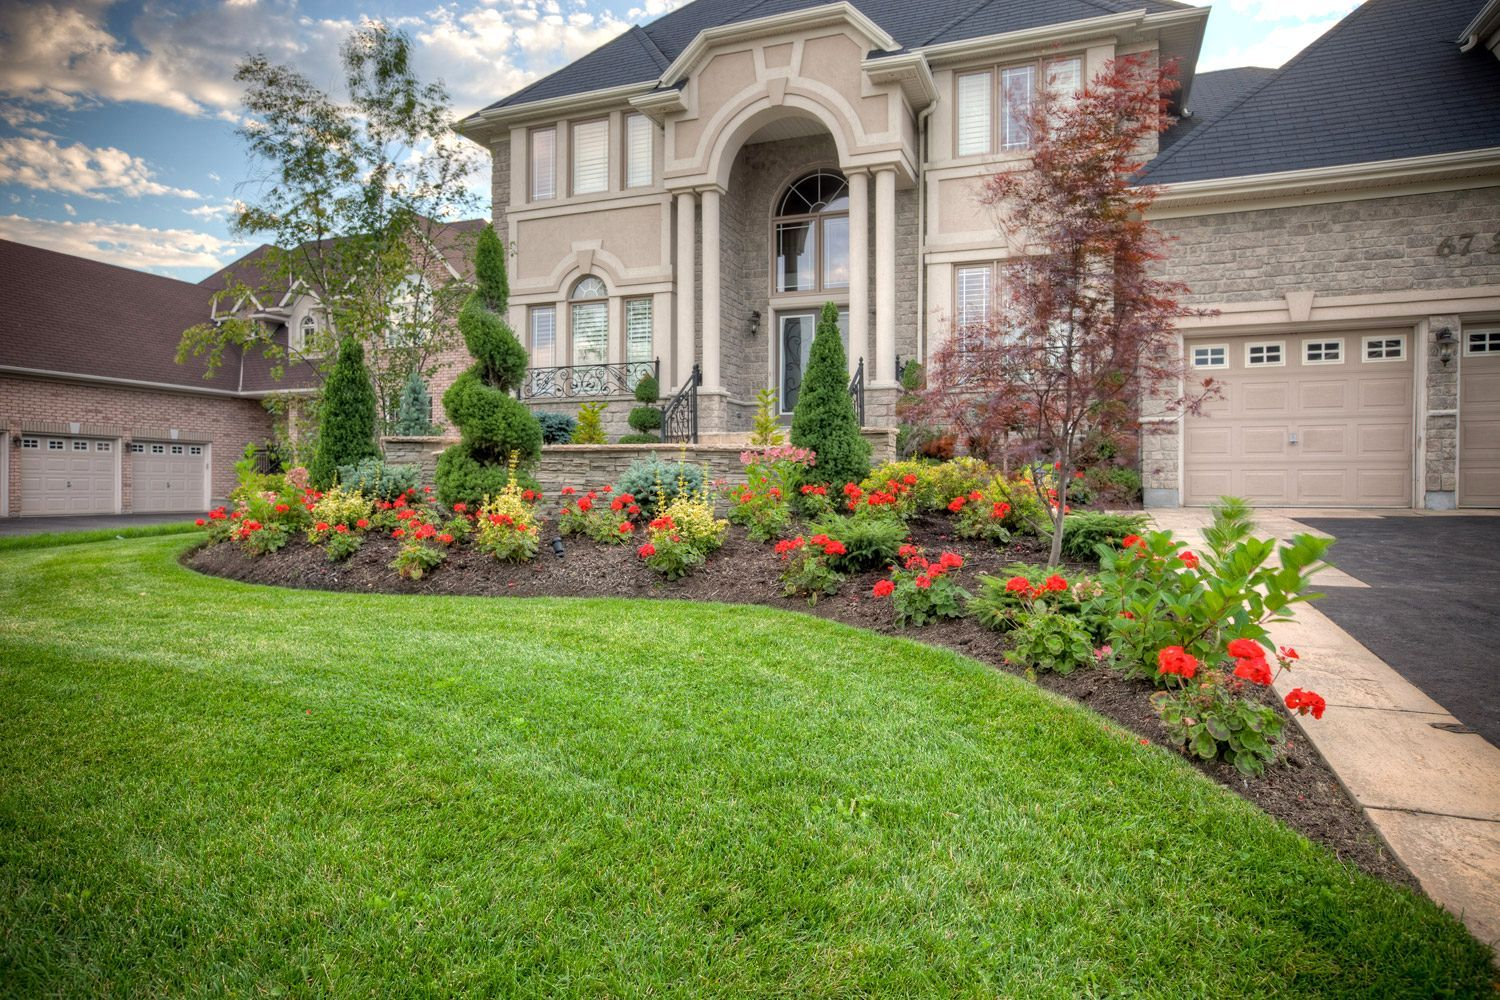 Great Colonial Front House Garden Design The Garden Inspirations